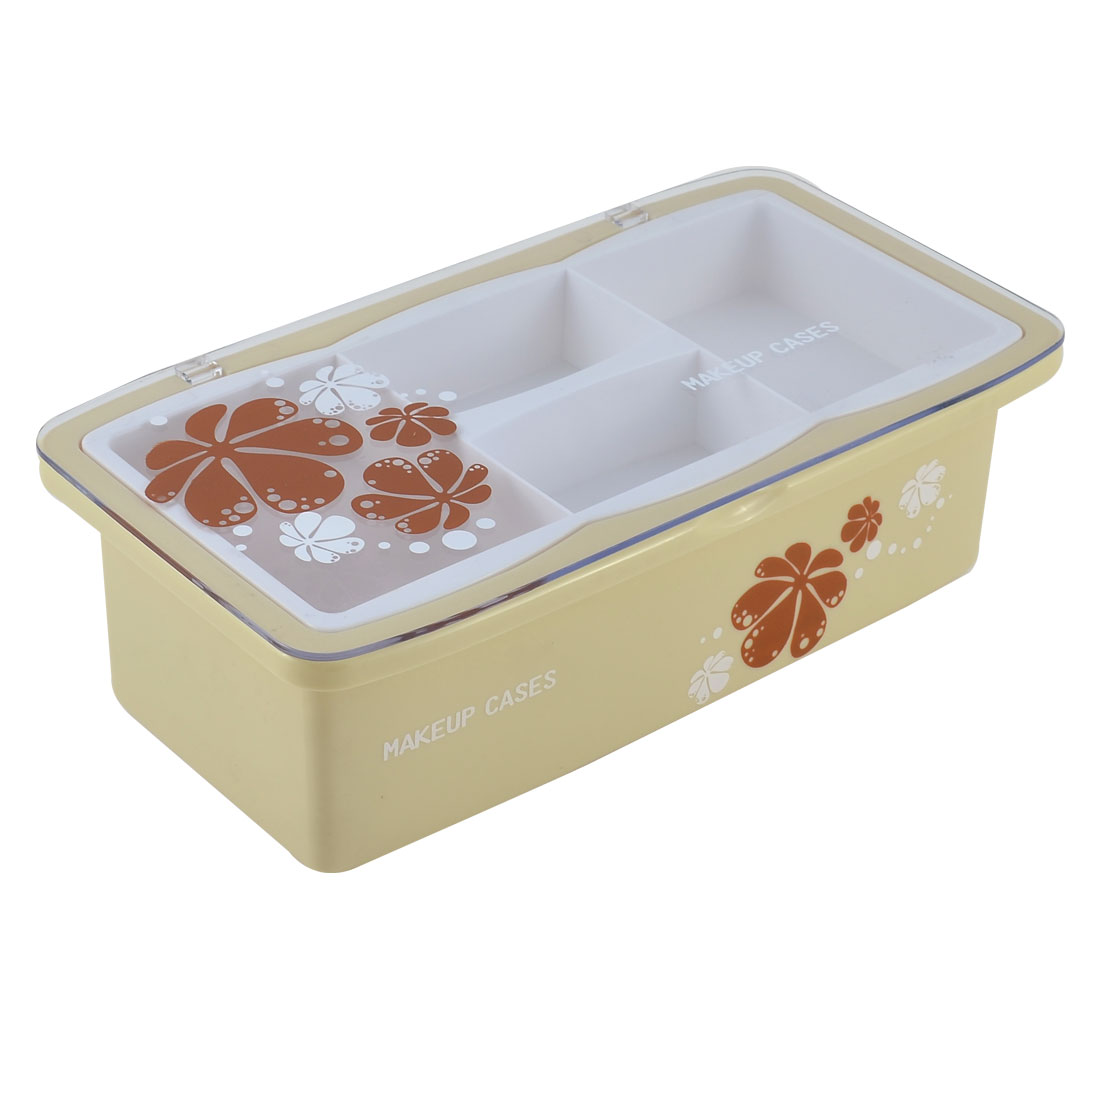 Pale Yellow Plastic Rectangle Double Layers Makeup Cosmetic Storage Box Case Organizer Holder